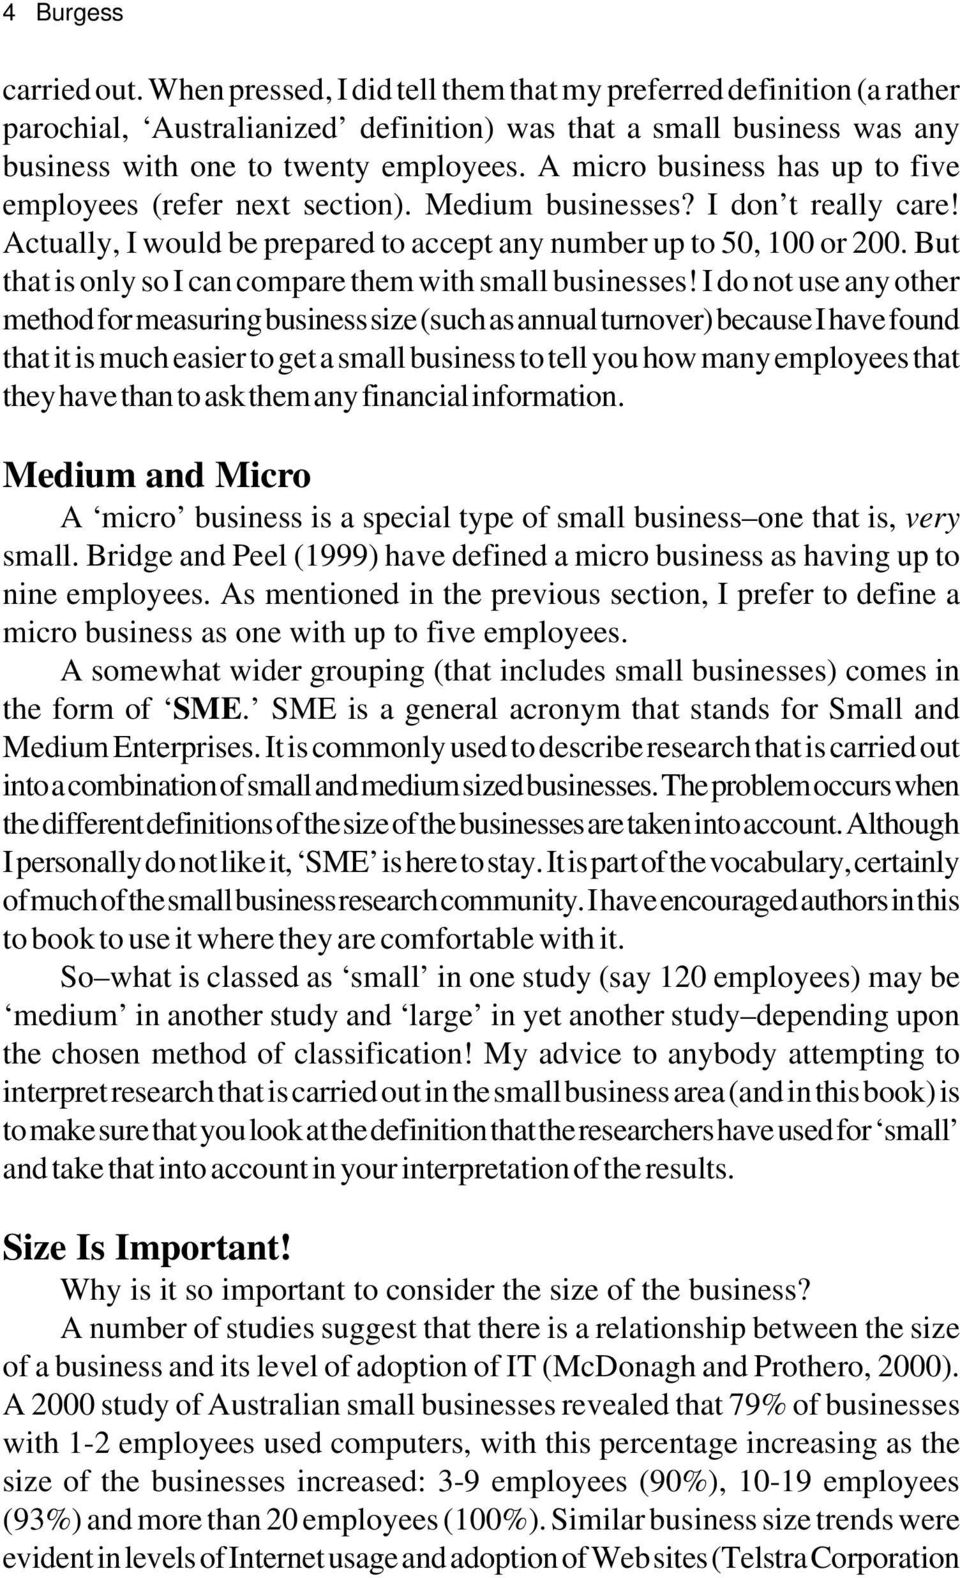 A micro business has up to five employees (refer next section). Medium businesses? I don t really care! Actually, I would be prepared to accept any number up to 50, 100 or 200.